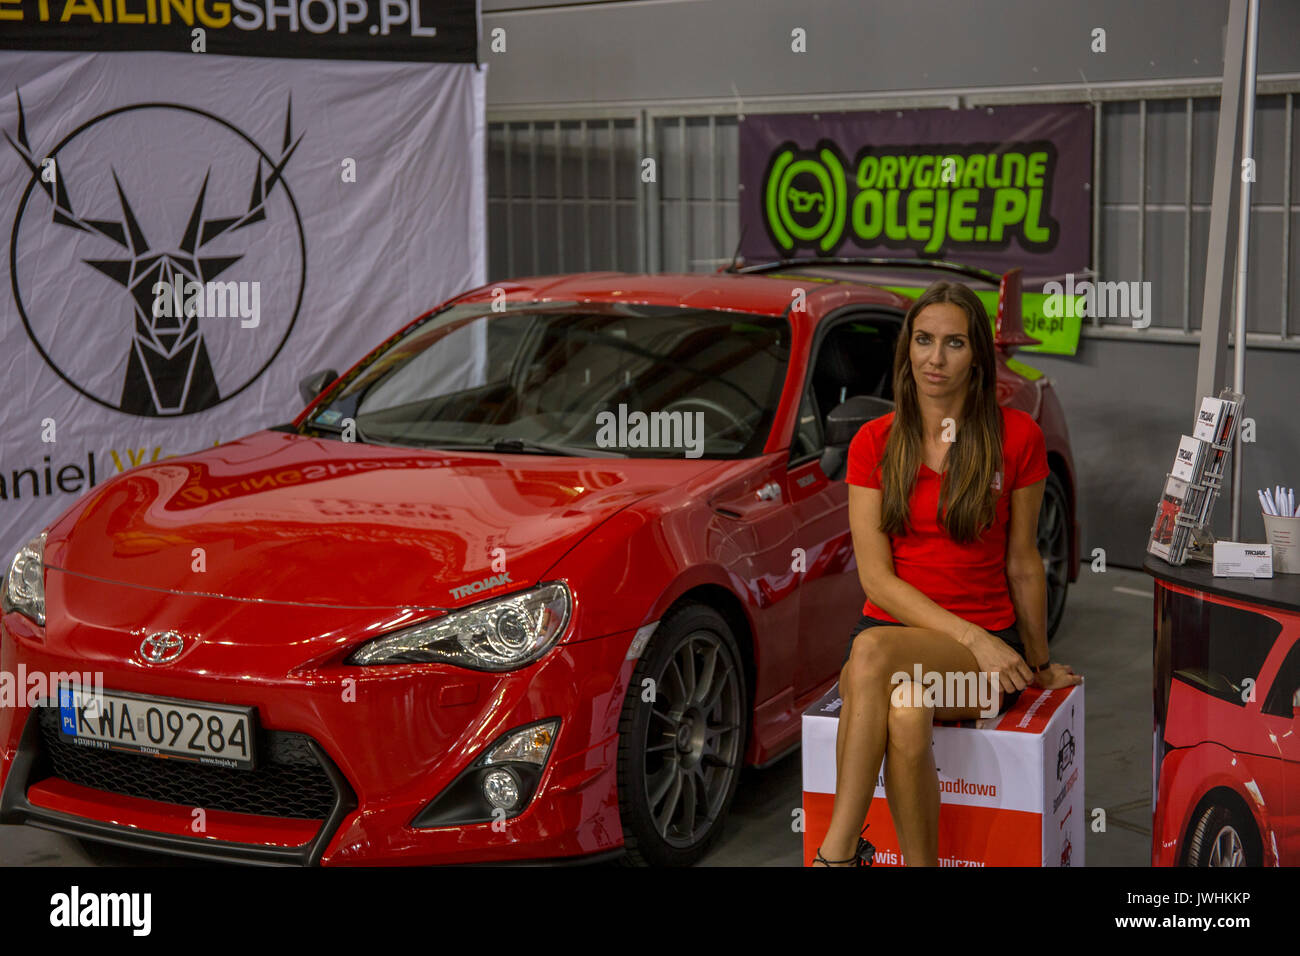 Bielsko-Biala, Poland. 12th Aug, 2017. International automotive trade fairs - MotoShow Bielsko-Biala. Toyota GT86 Stock Photo